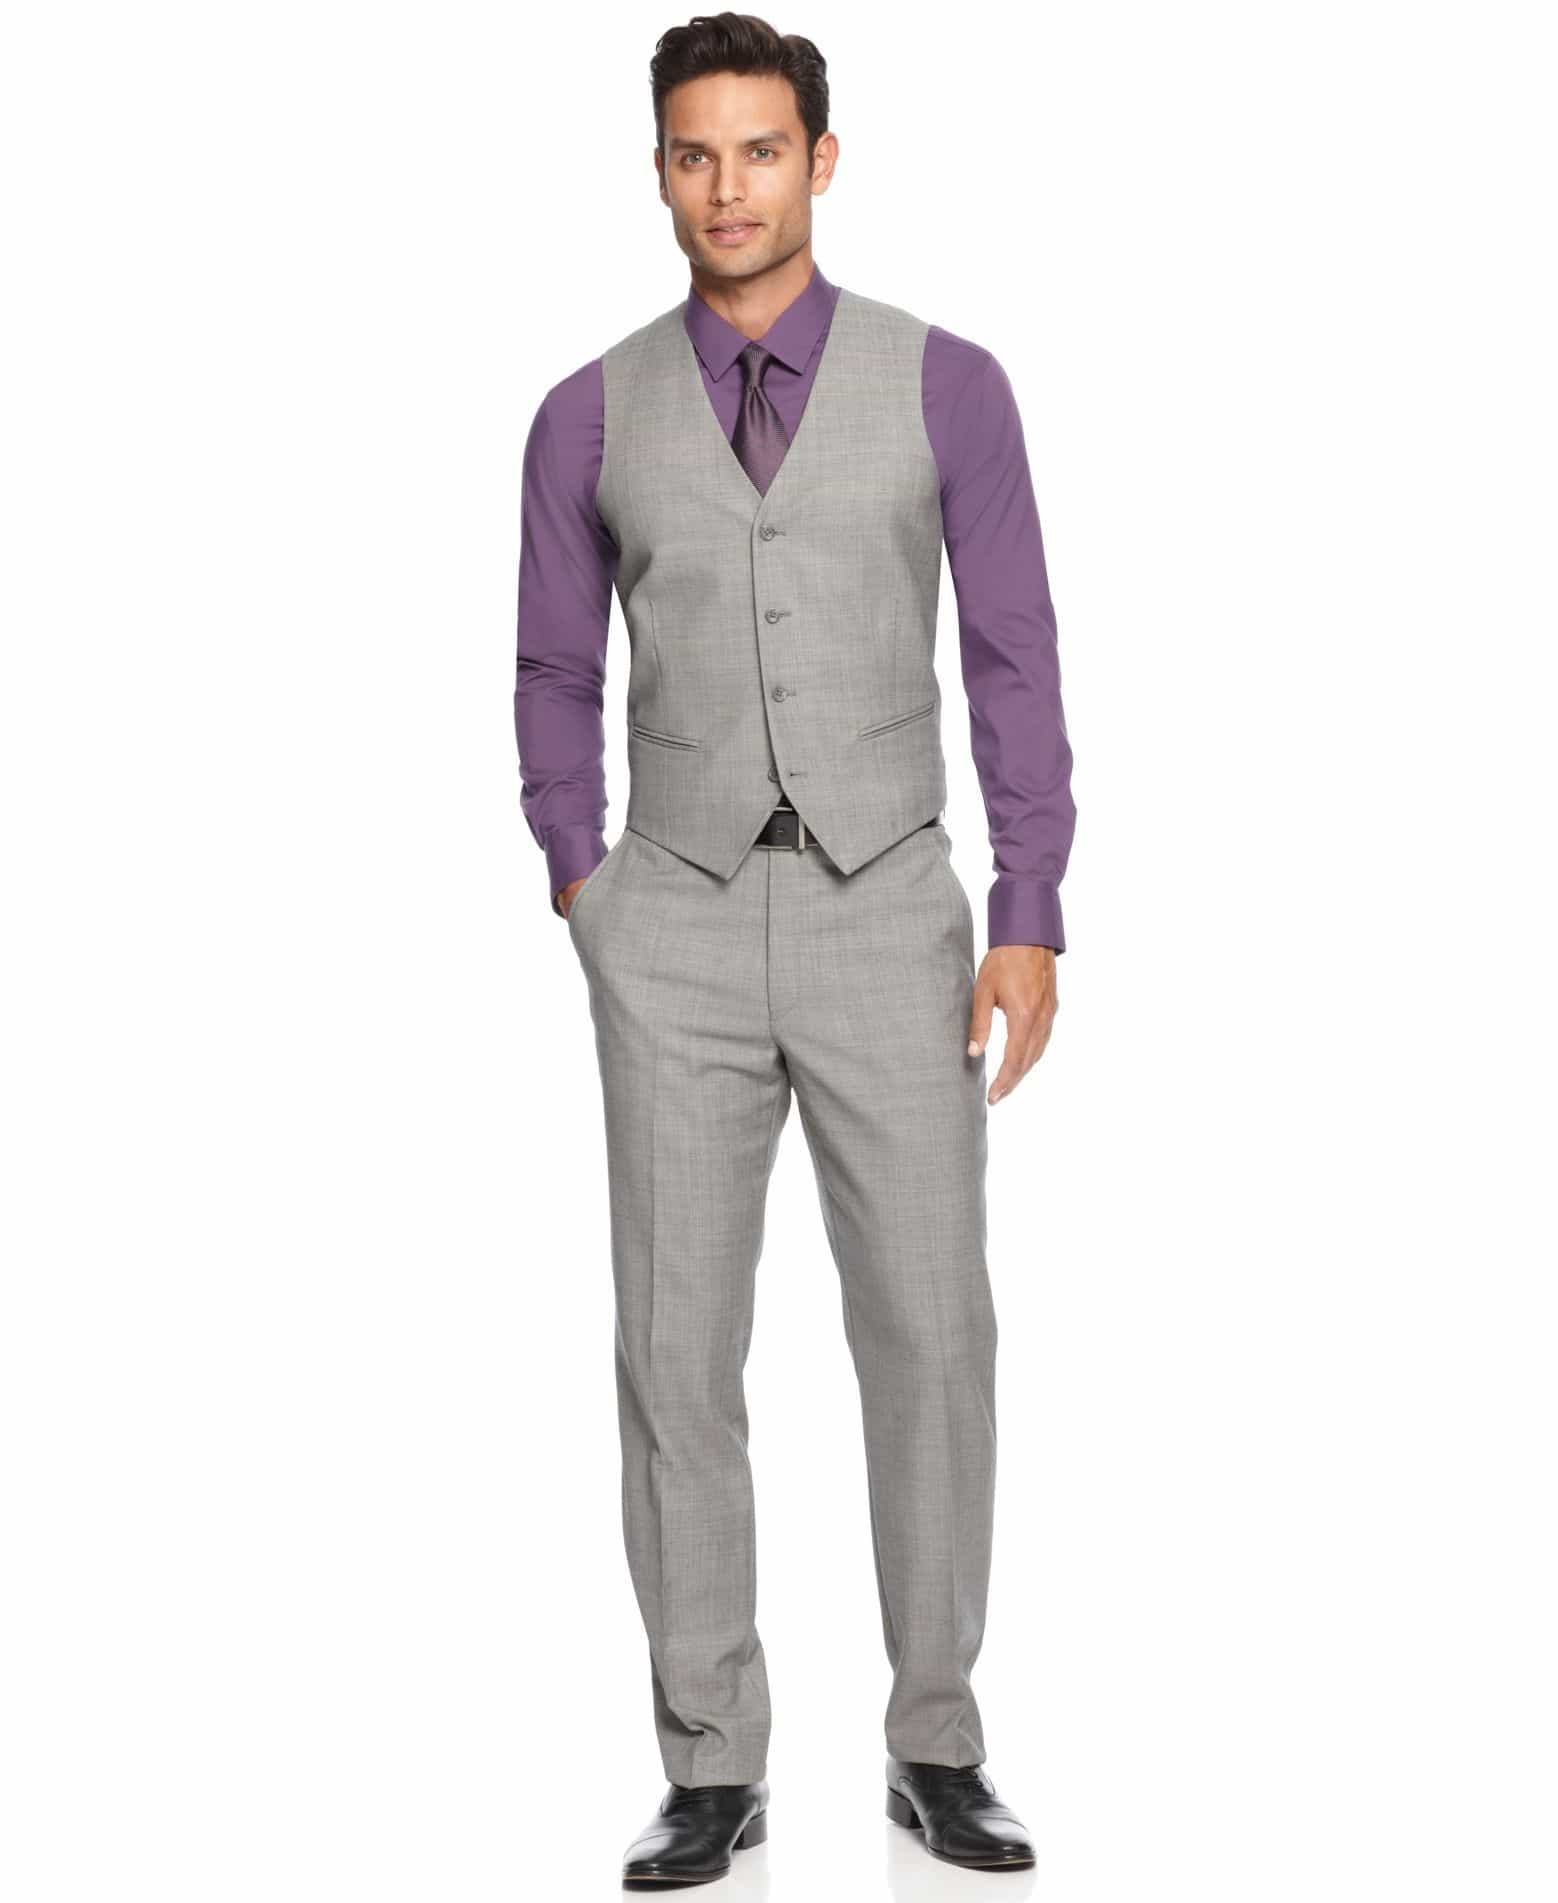 The Best Men's Spring Colored Suits